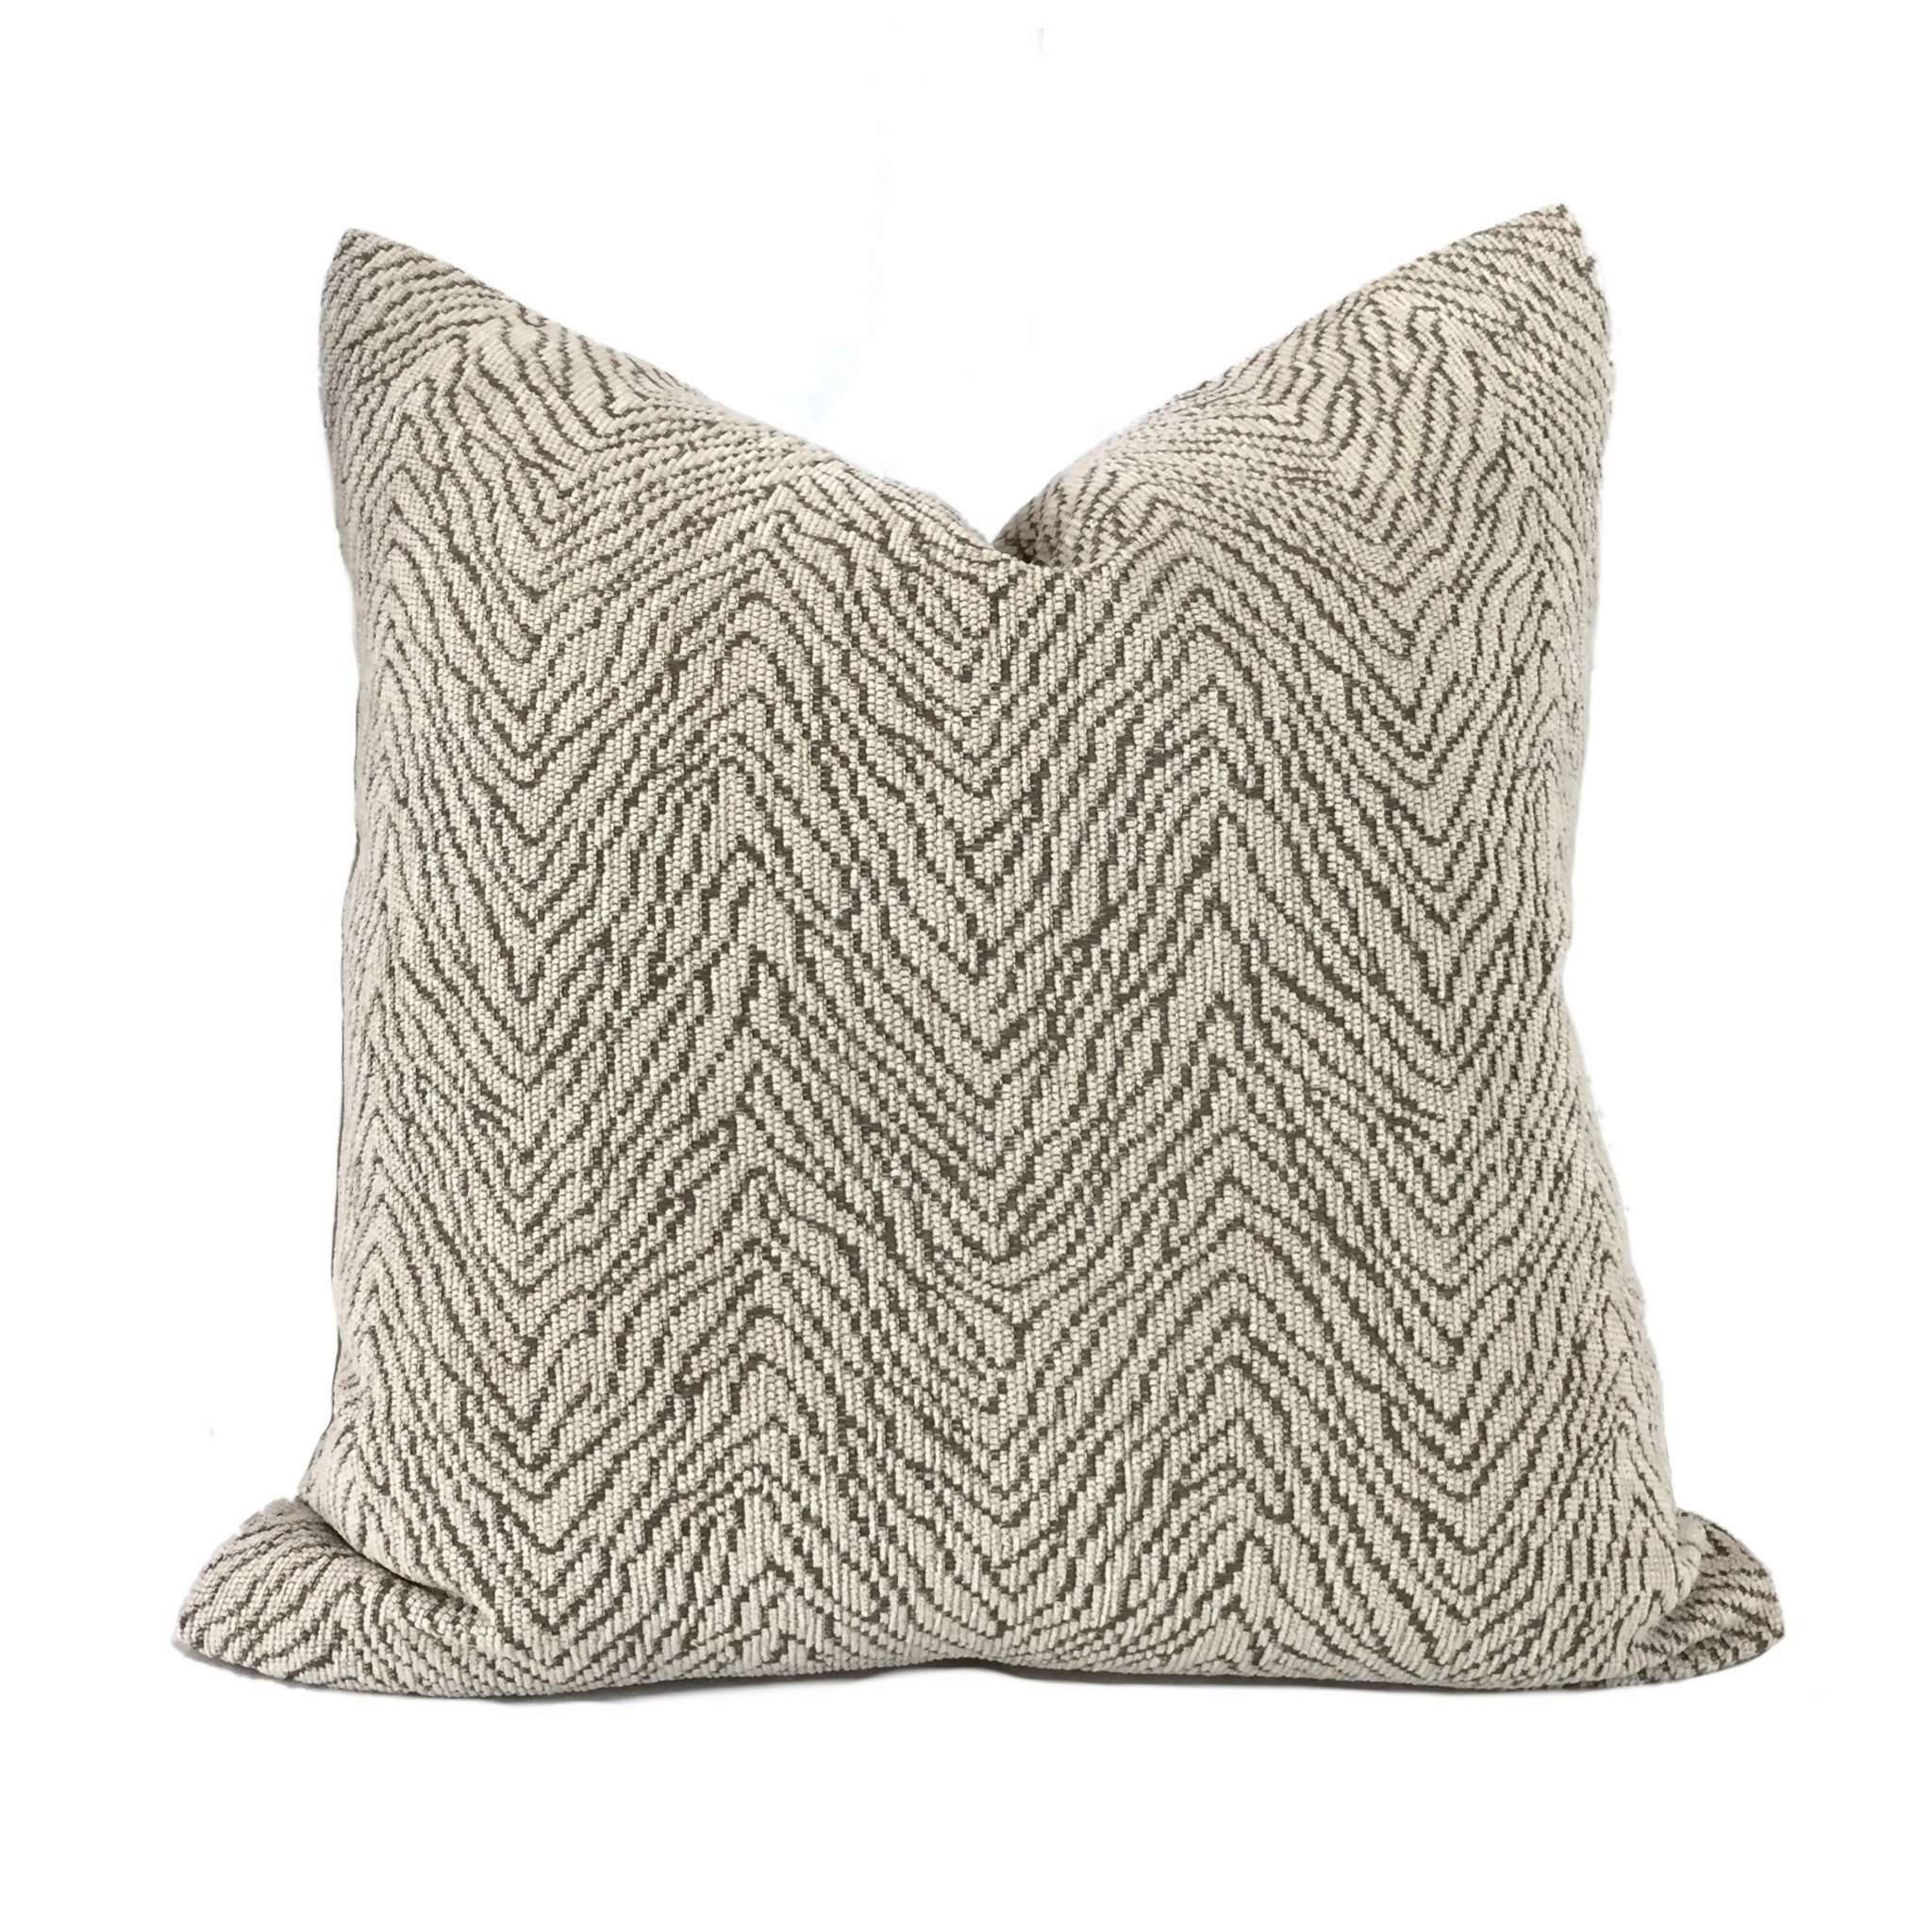 Robert Allen Wavelength Oatmeal Beige Brown Chenille Pillow Cover by Aloriam